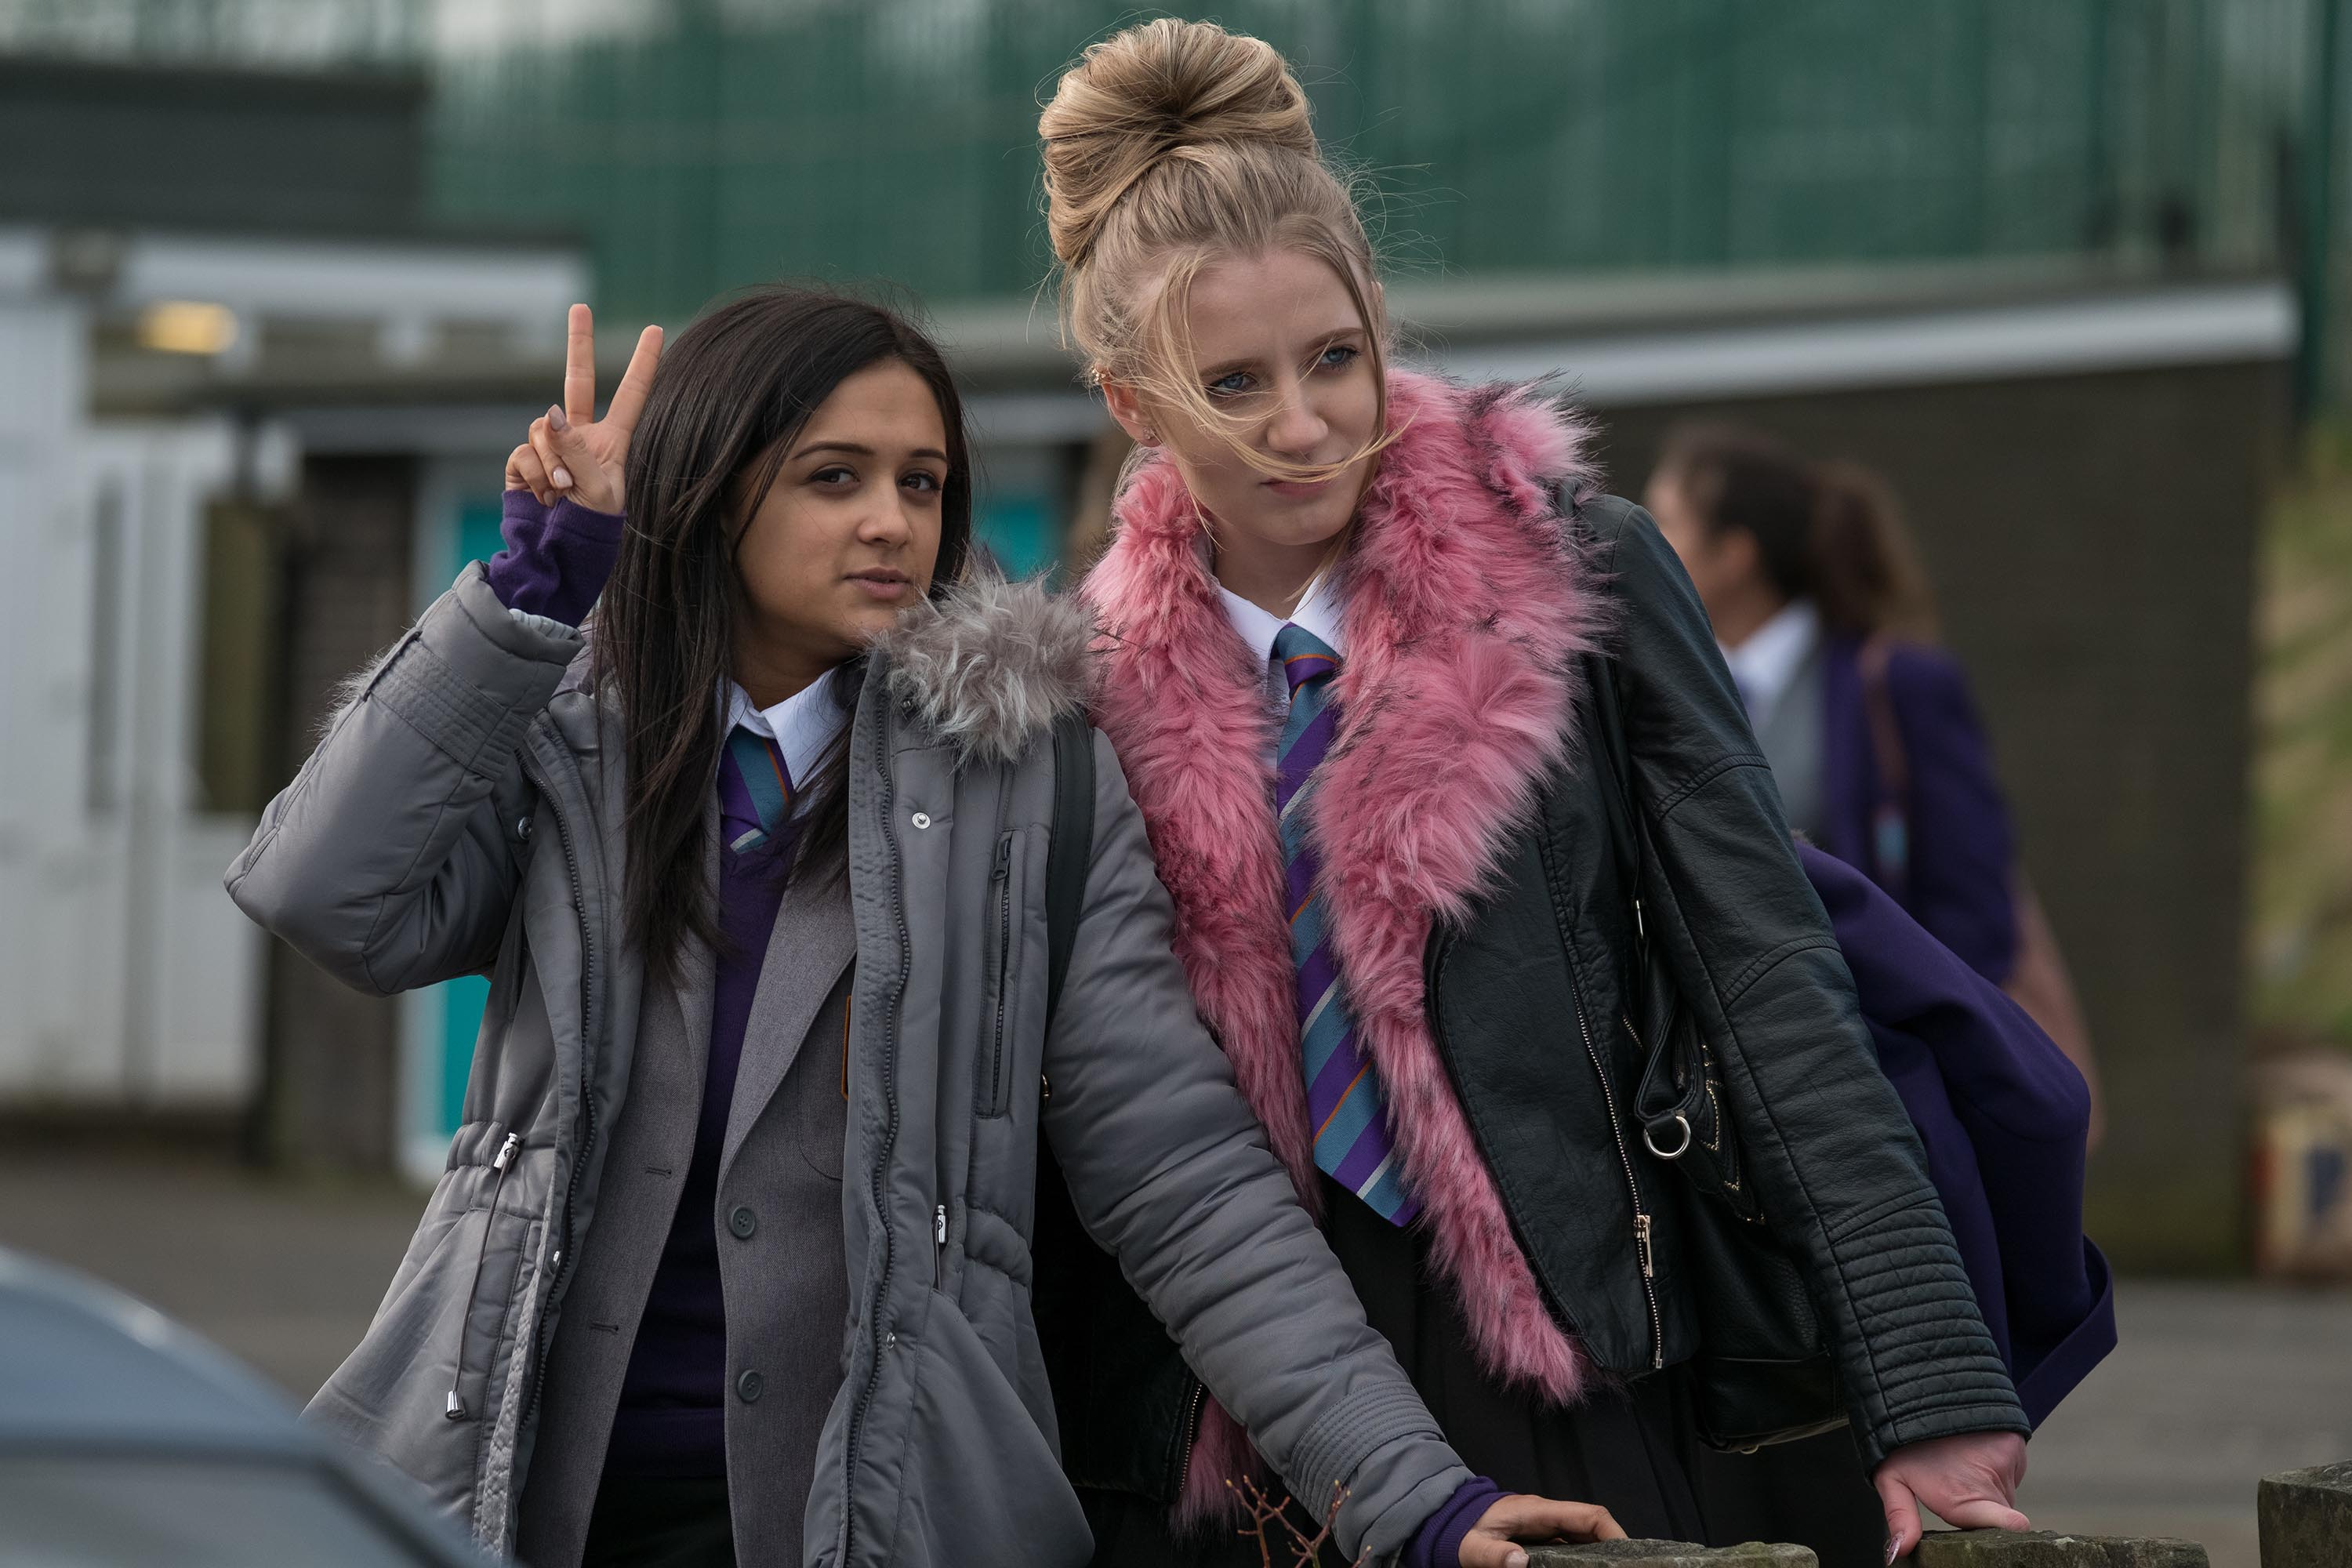 Channel 4 hands school drama Ackley Bridge a second series which is doubled in length